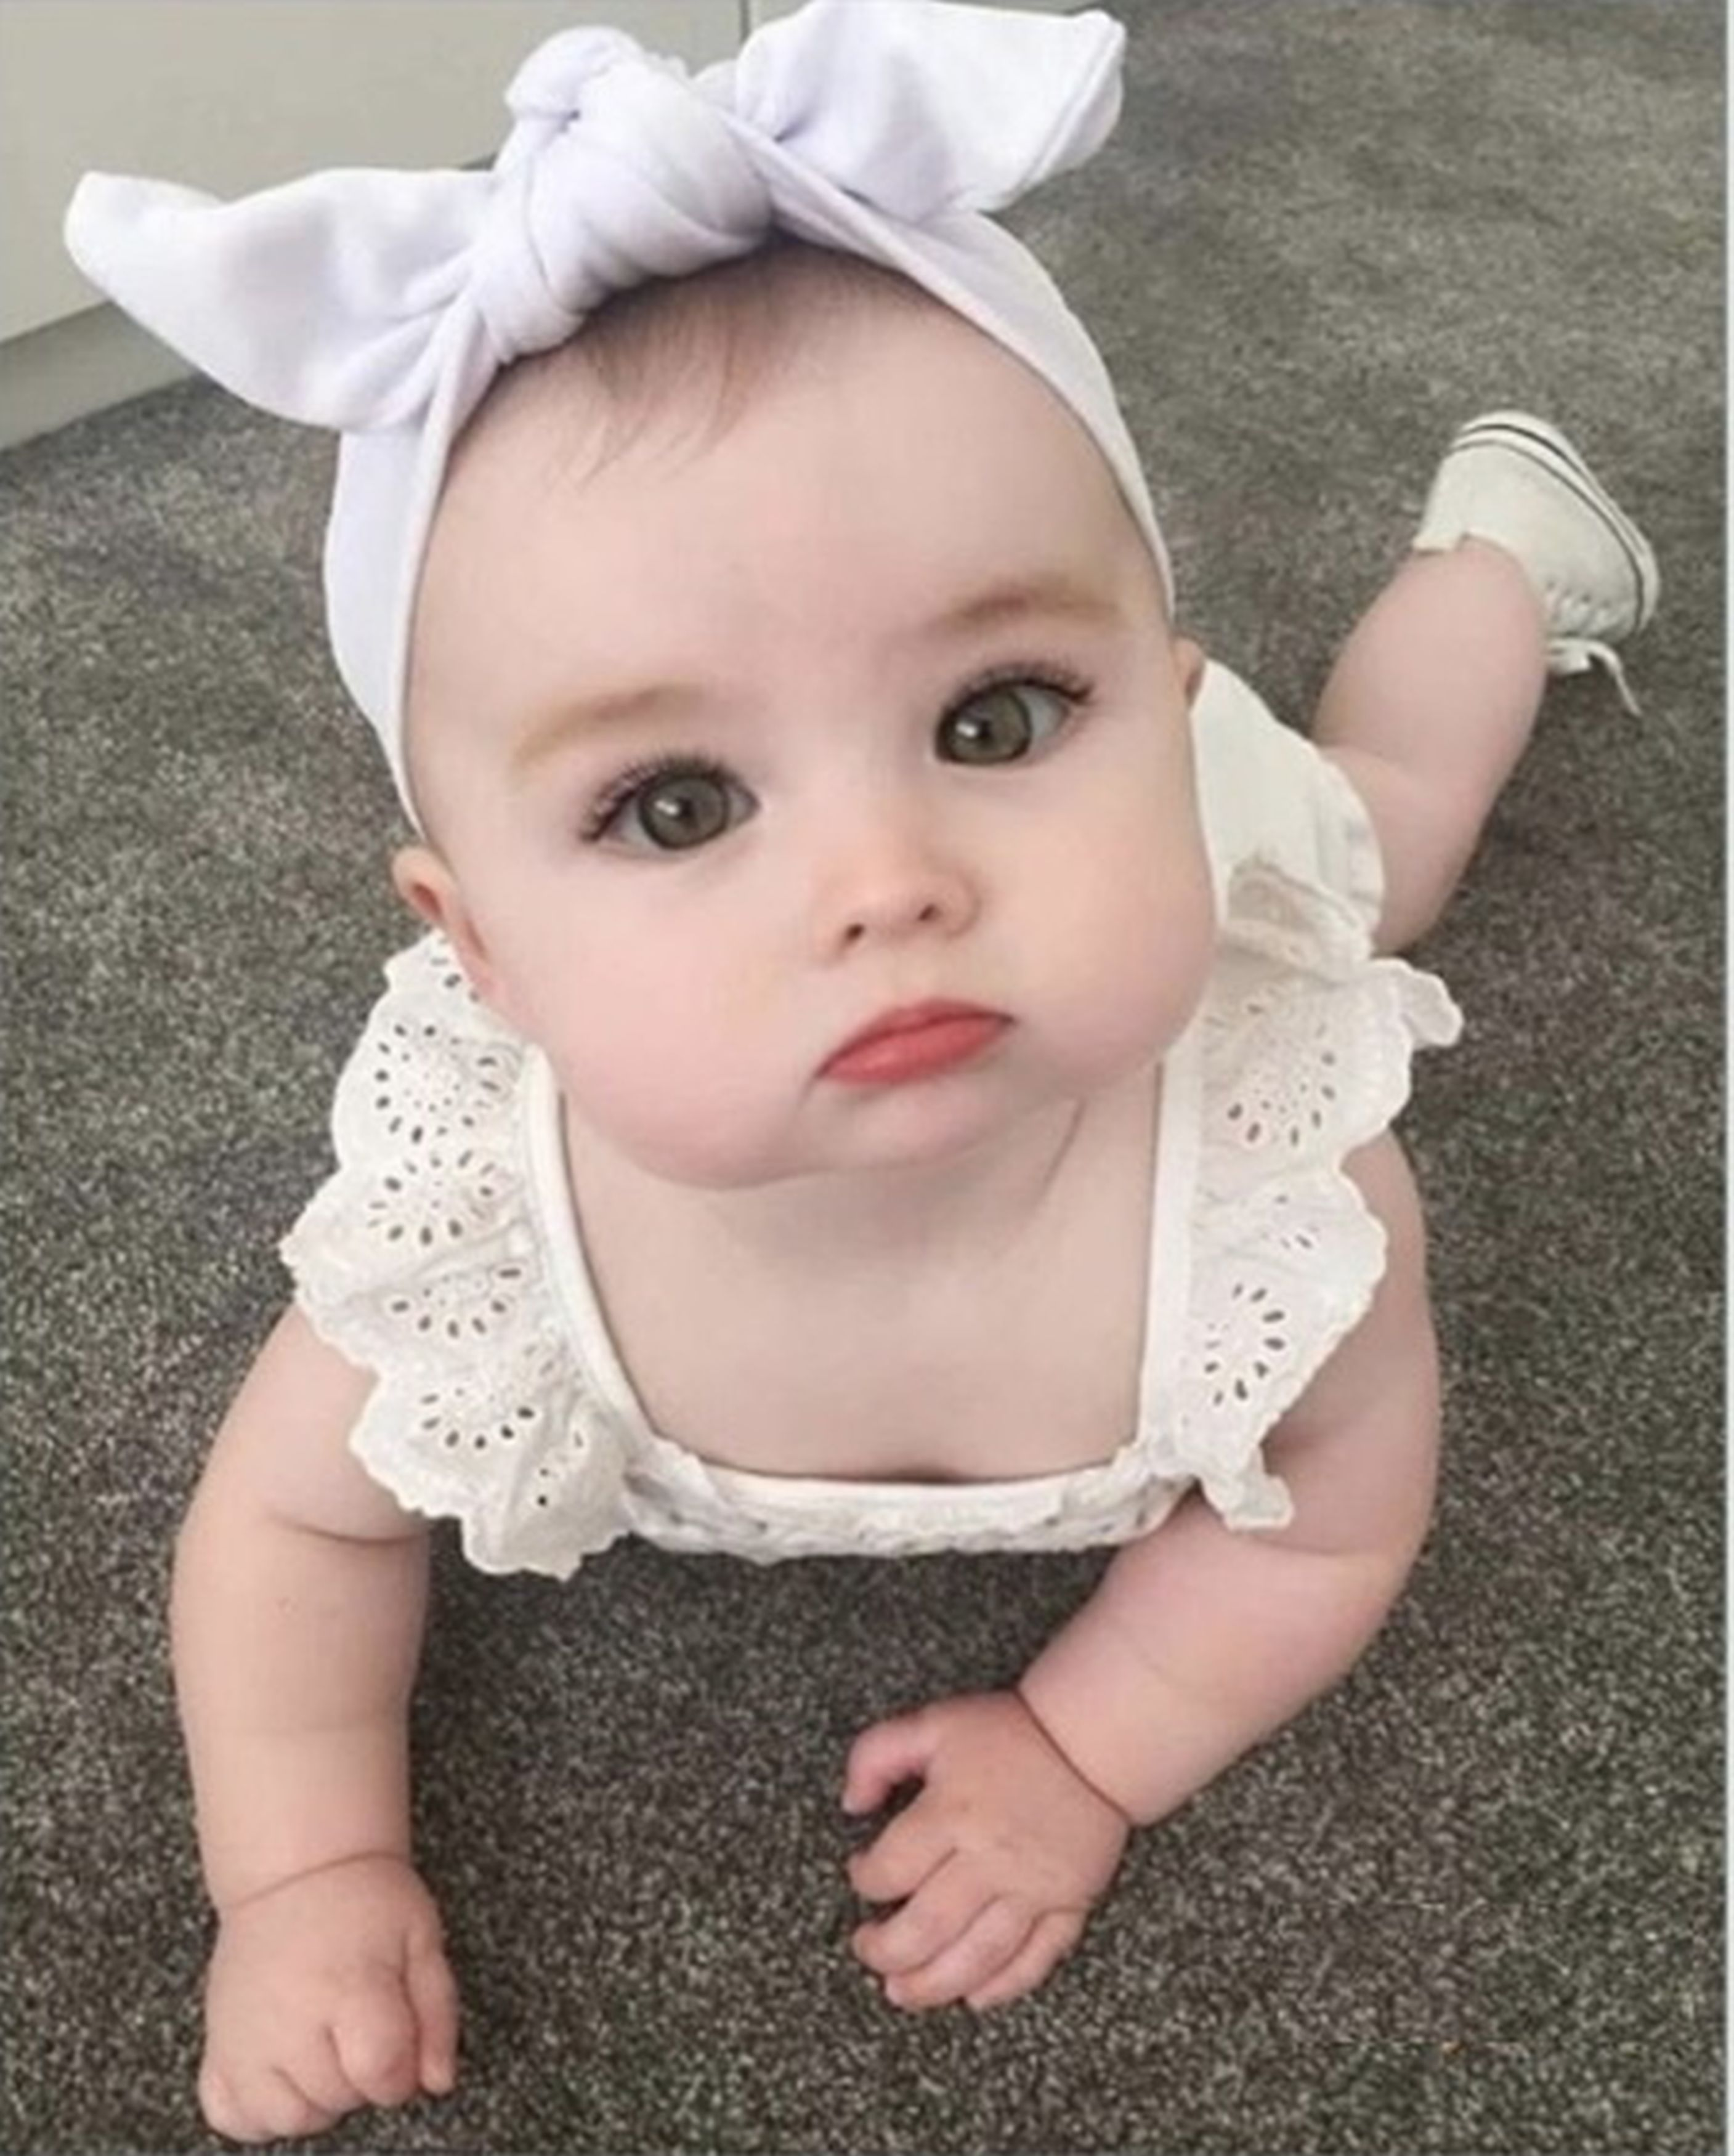 Baby edited to look like she's wearing makeup